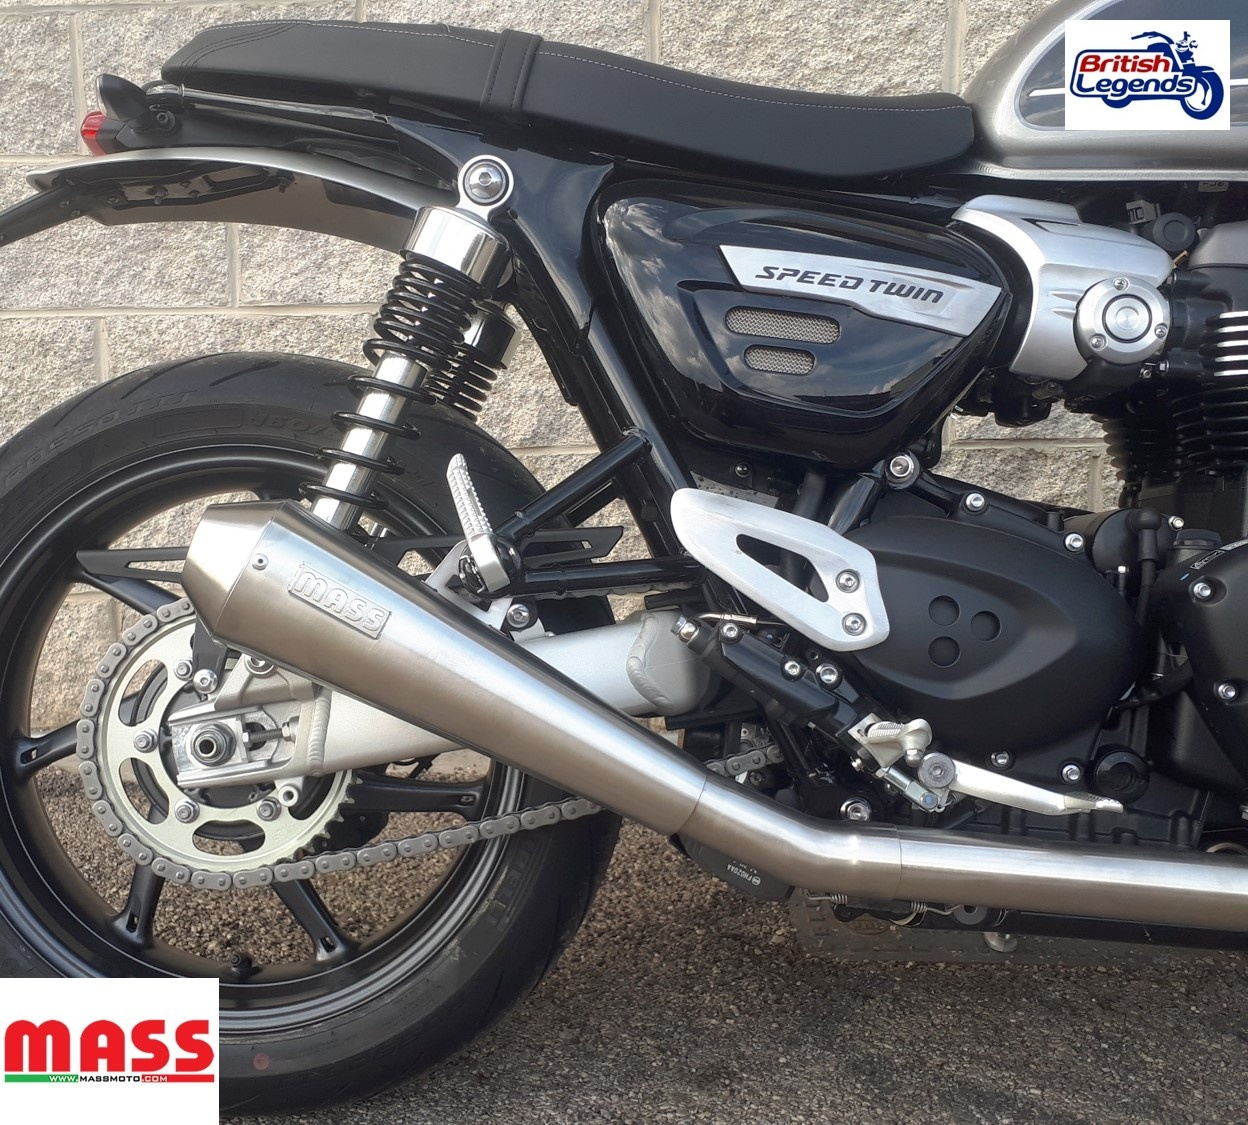 2 Into 1 Exhaust System For Triumph Speed Twin Triumph Parts